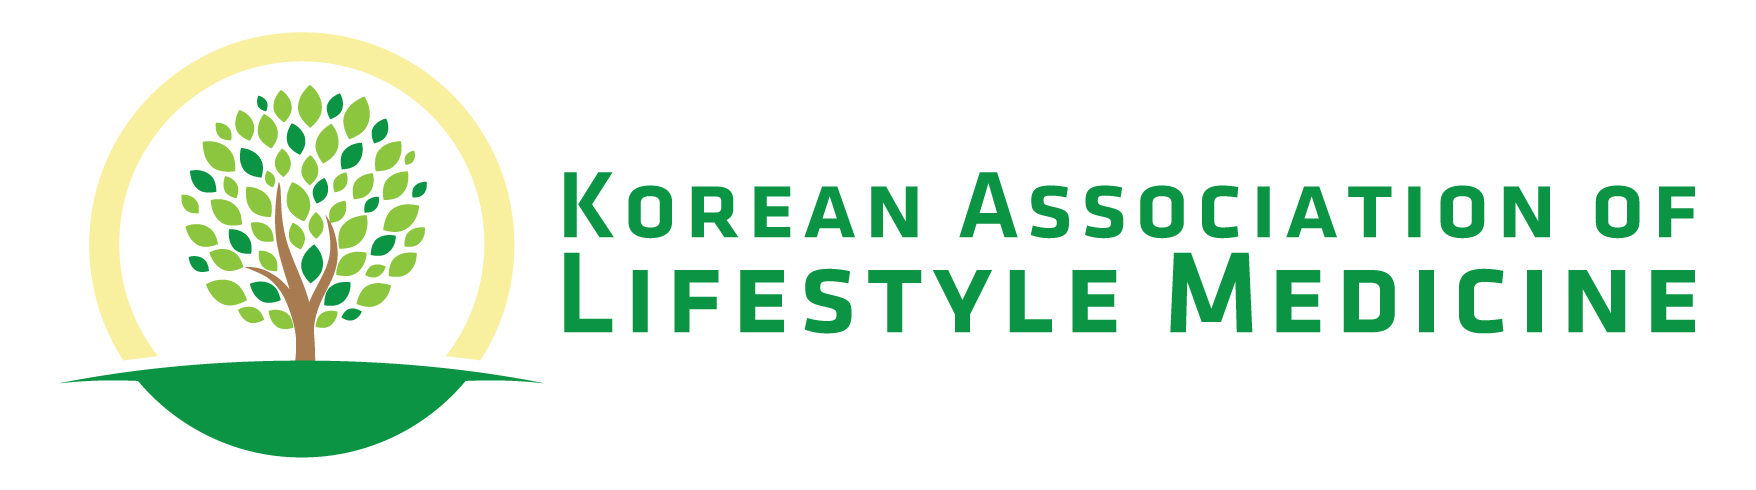 The Korean Association of Lifestyle Medicine (KALM) is a non-profit organization founded by multidisciplinary healthcare professionals and represents the ...